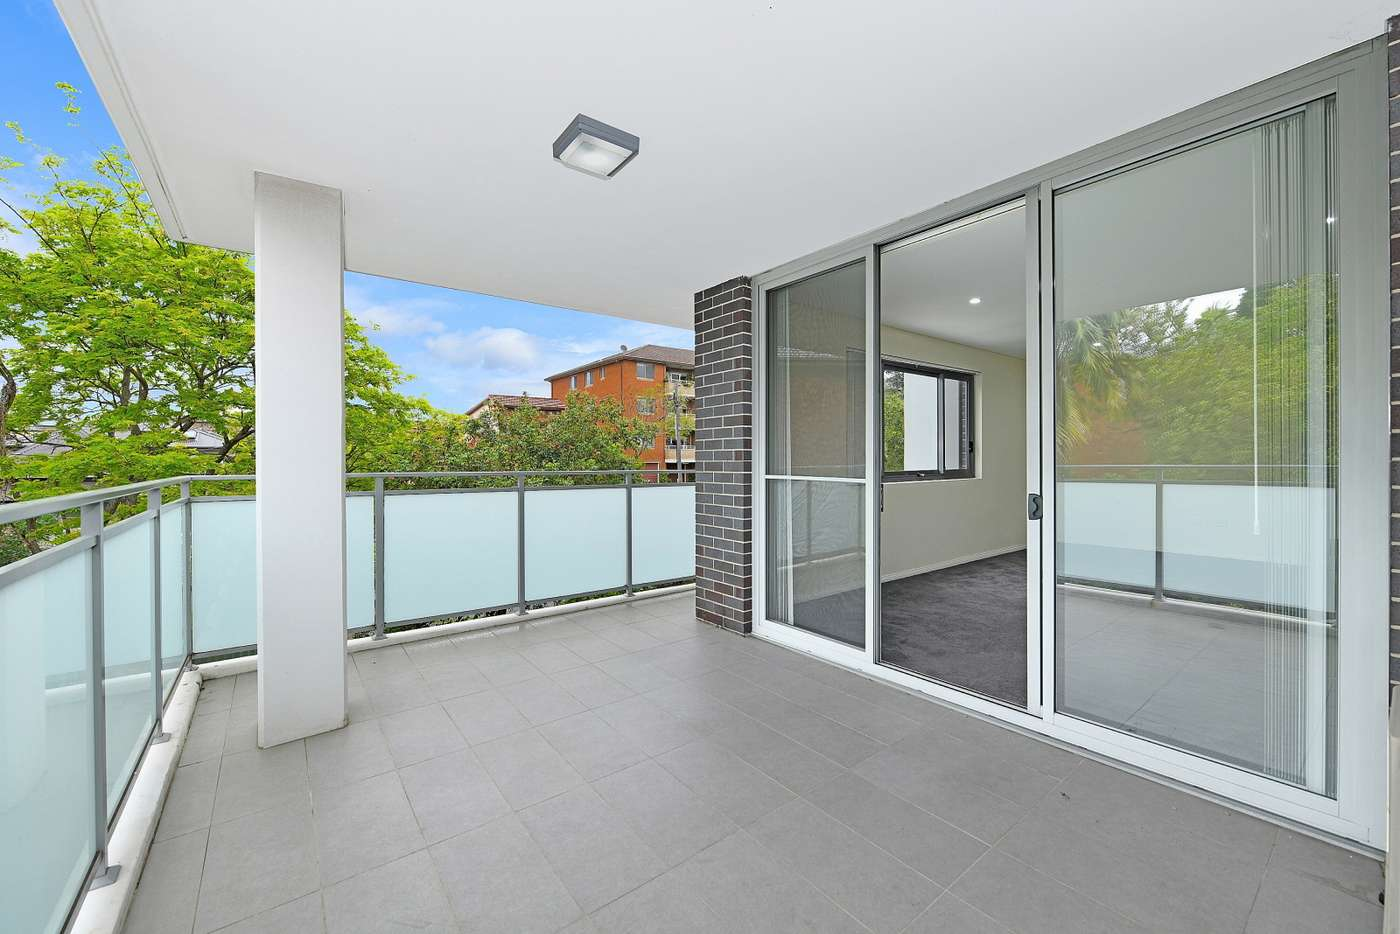 Sixth view of Homely apartment listing, 6/3 Stanley St, Arncliffe NSW 2205